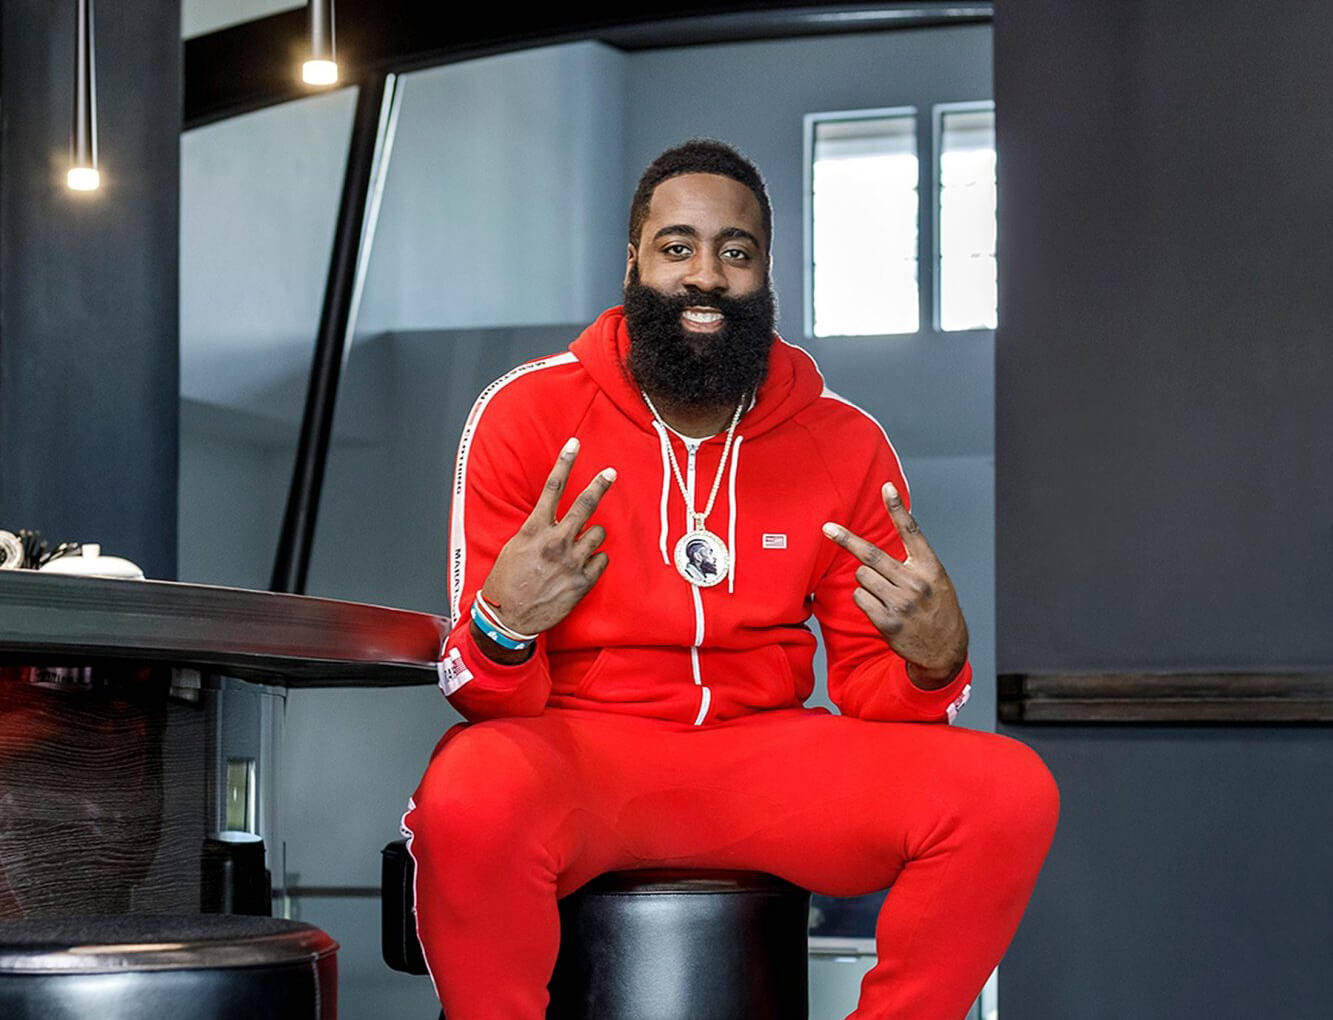 Photo of basketball star James Harden of the Houston Rockets